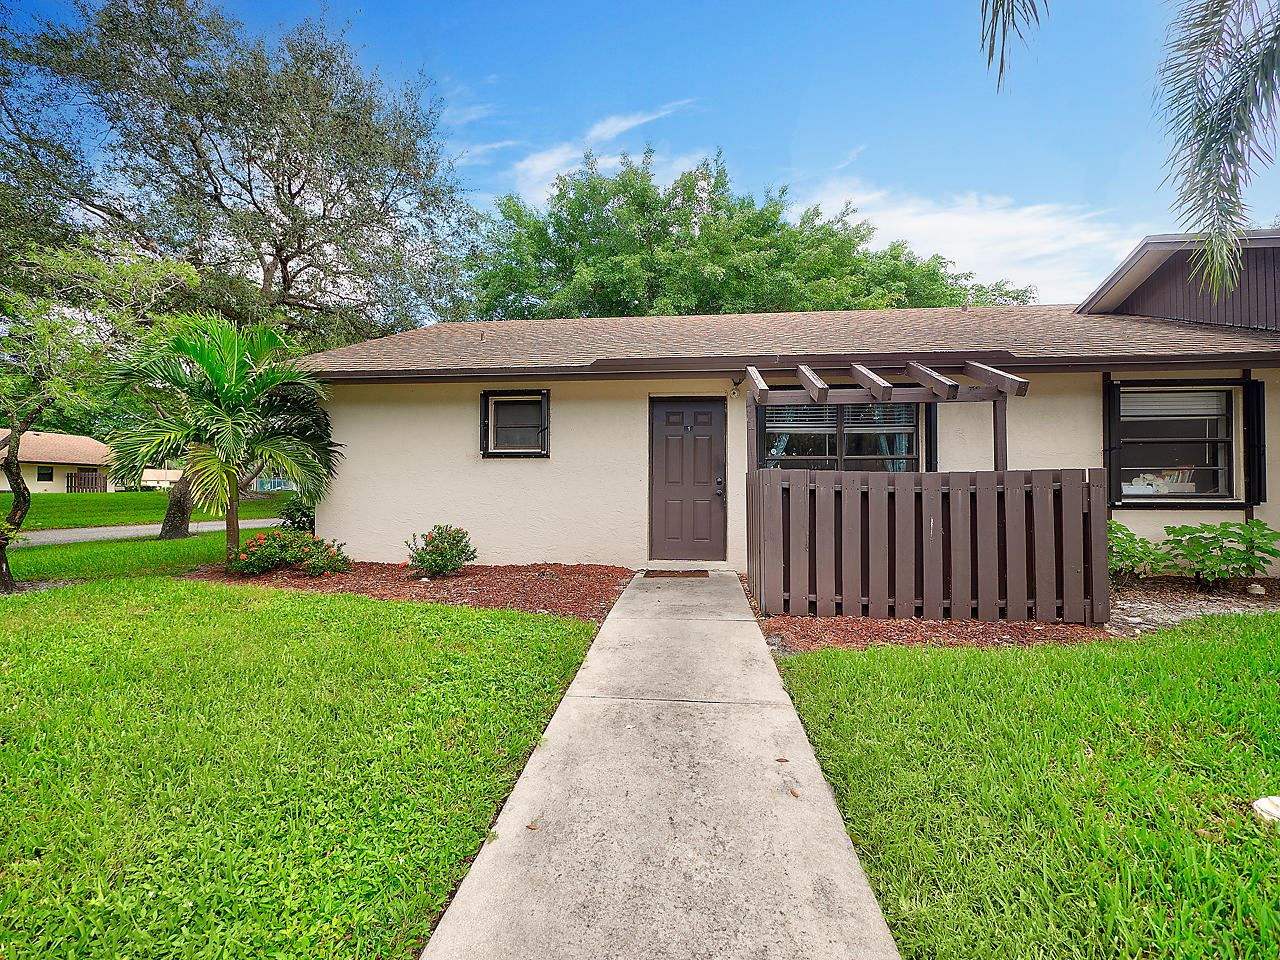 1 ViA De Casas Norte, Boynton Beach, FL 33426 - #: RX-10672150